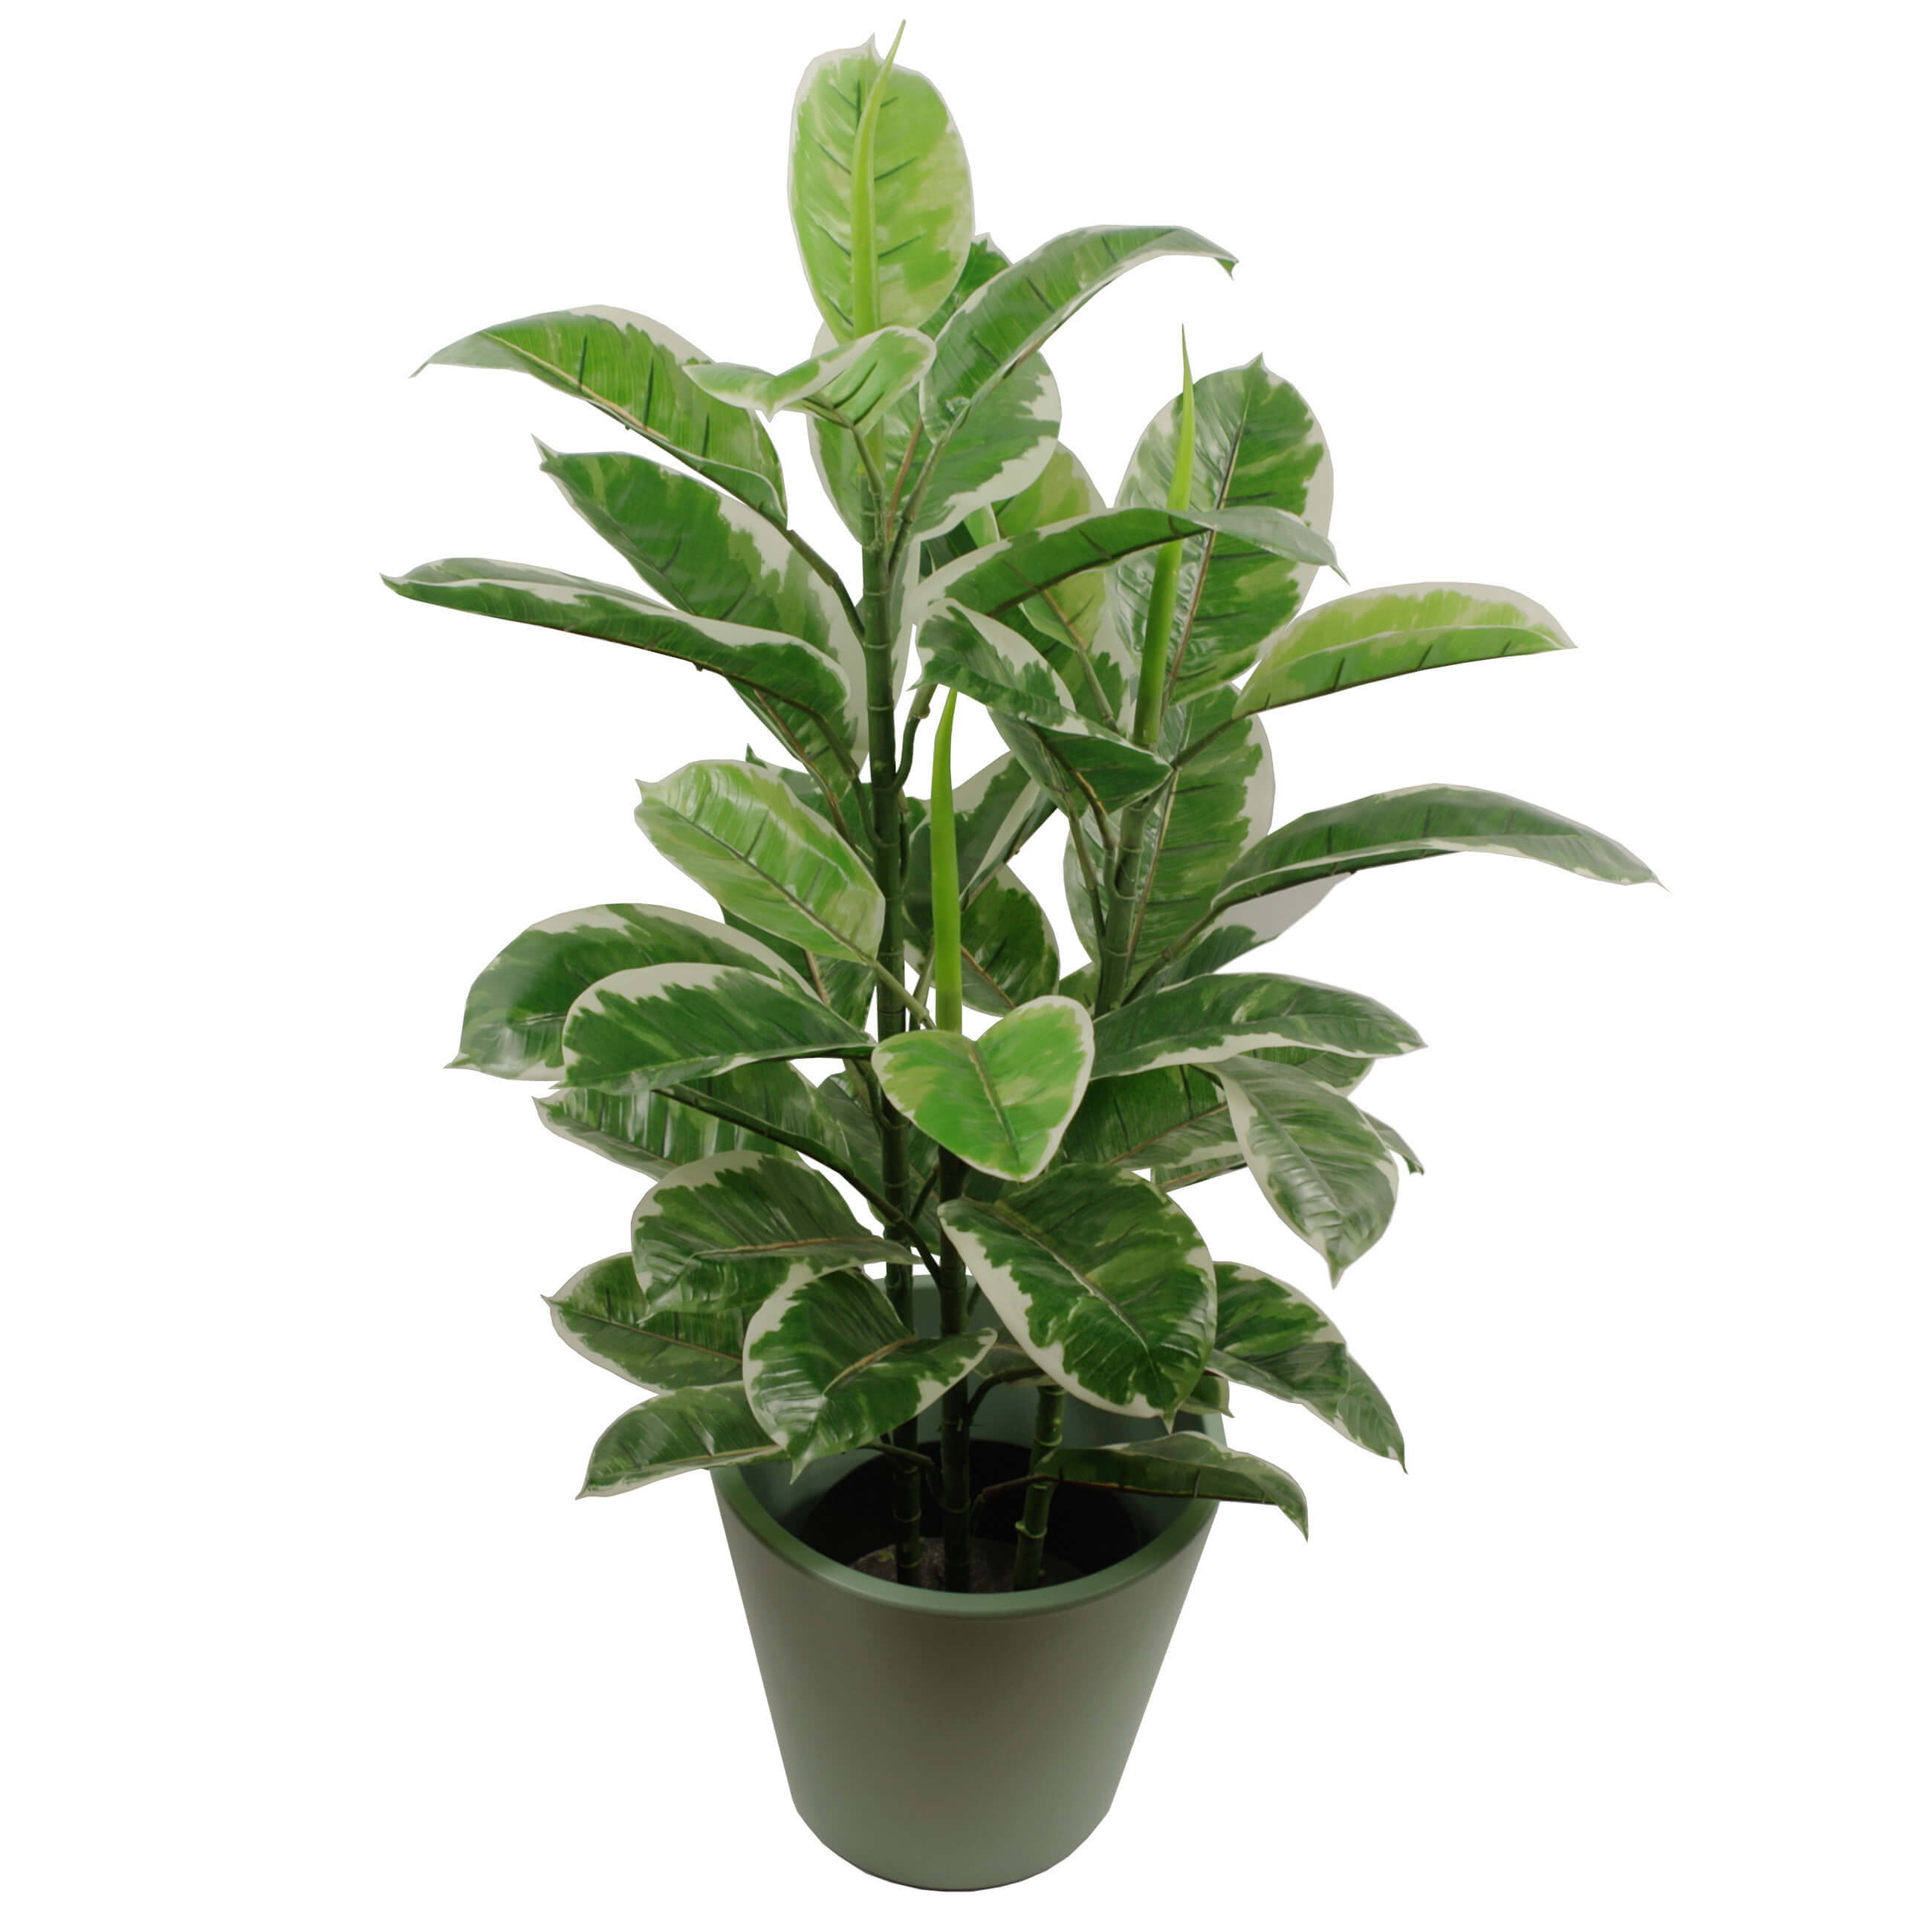 90cm large realistic variegated rubber plant artificial for Large garden plants